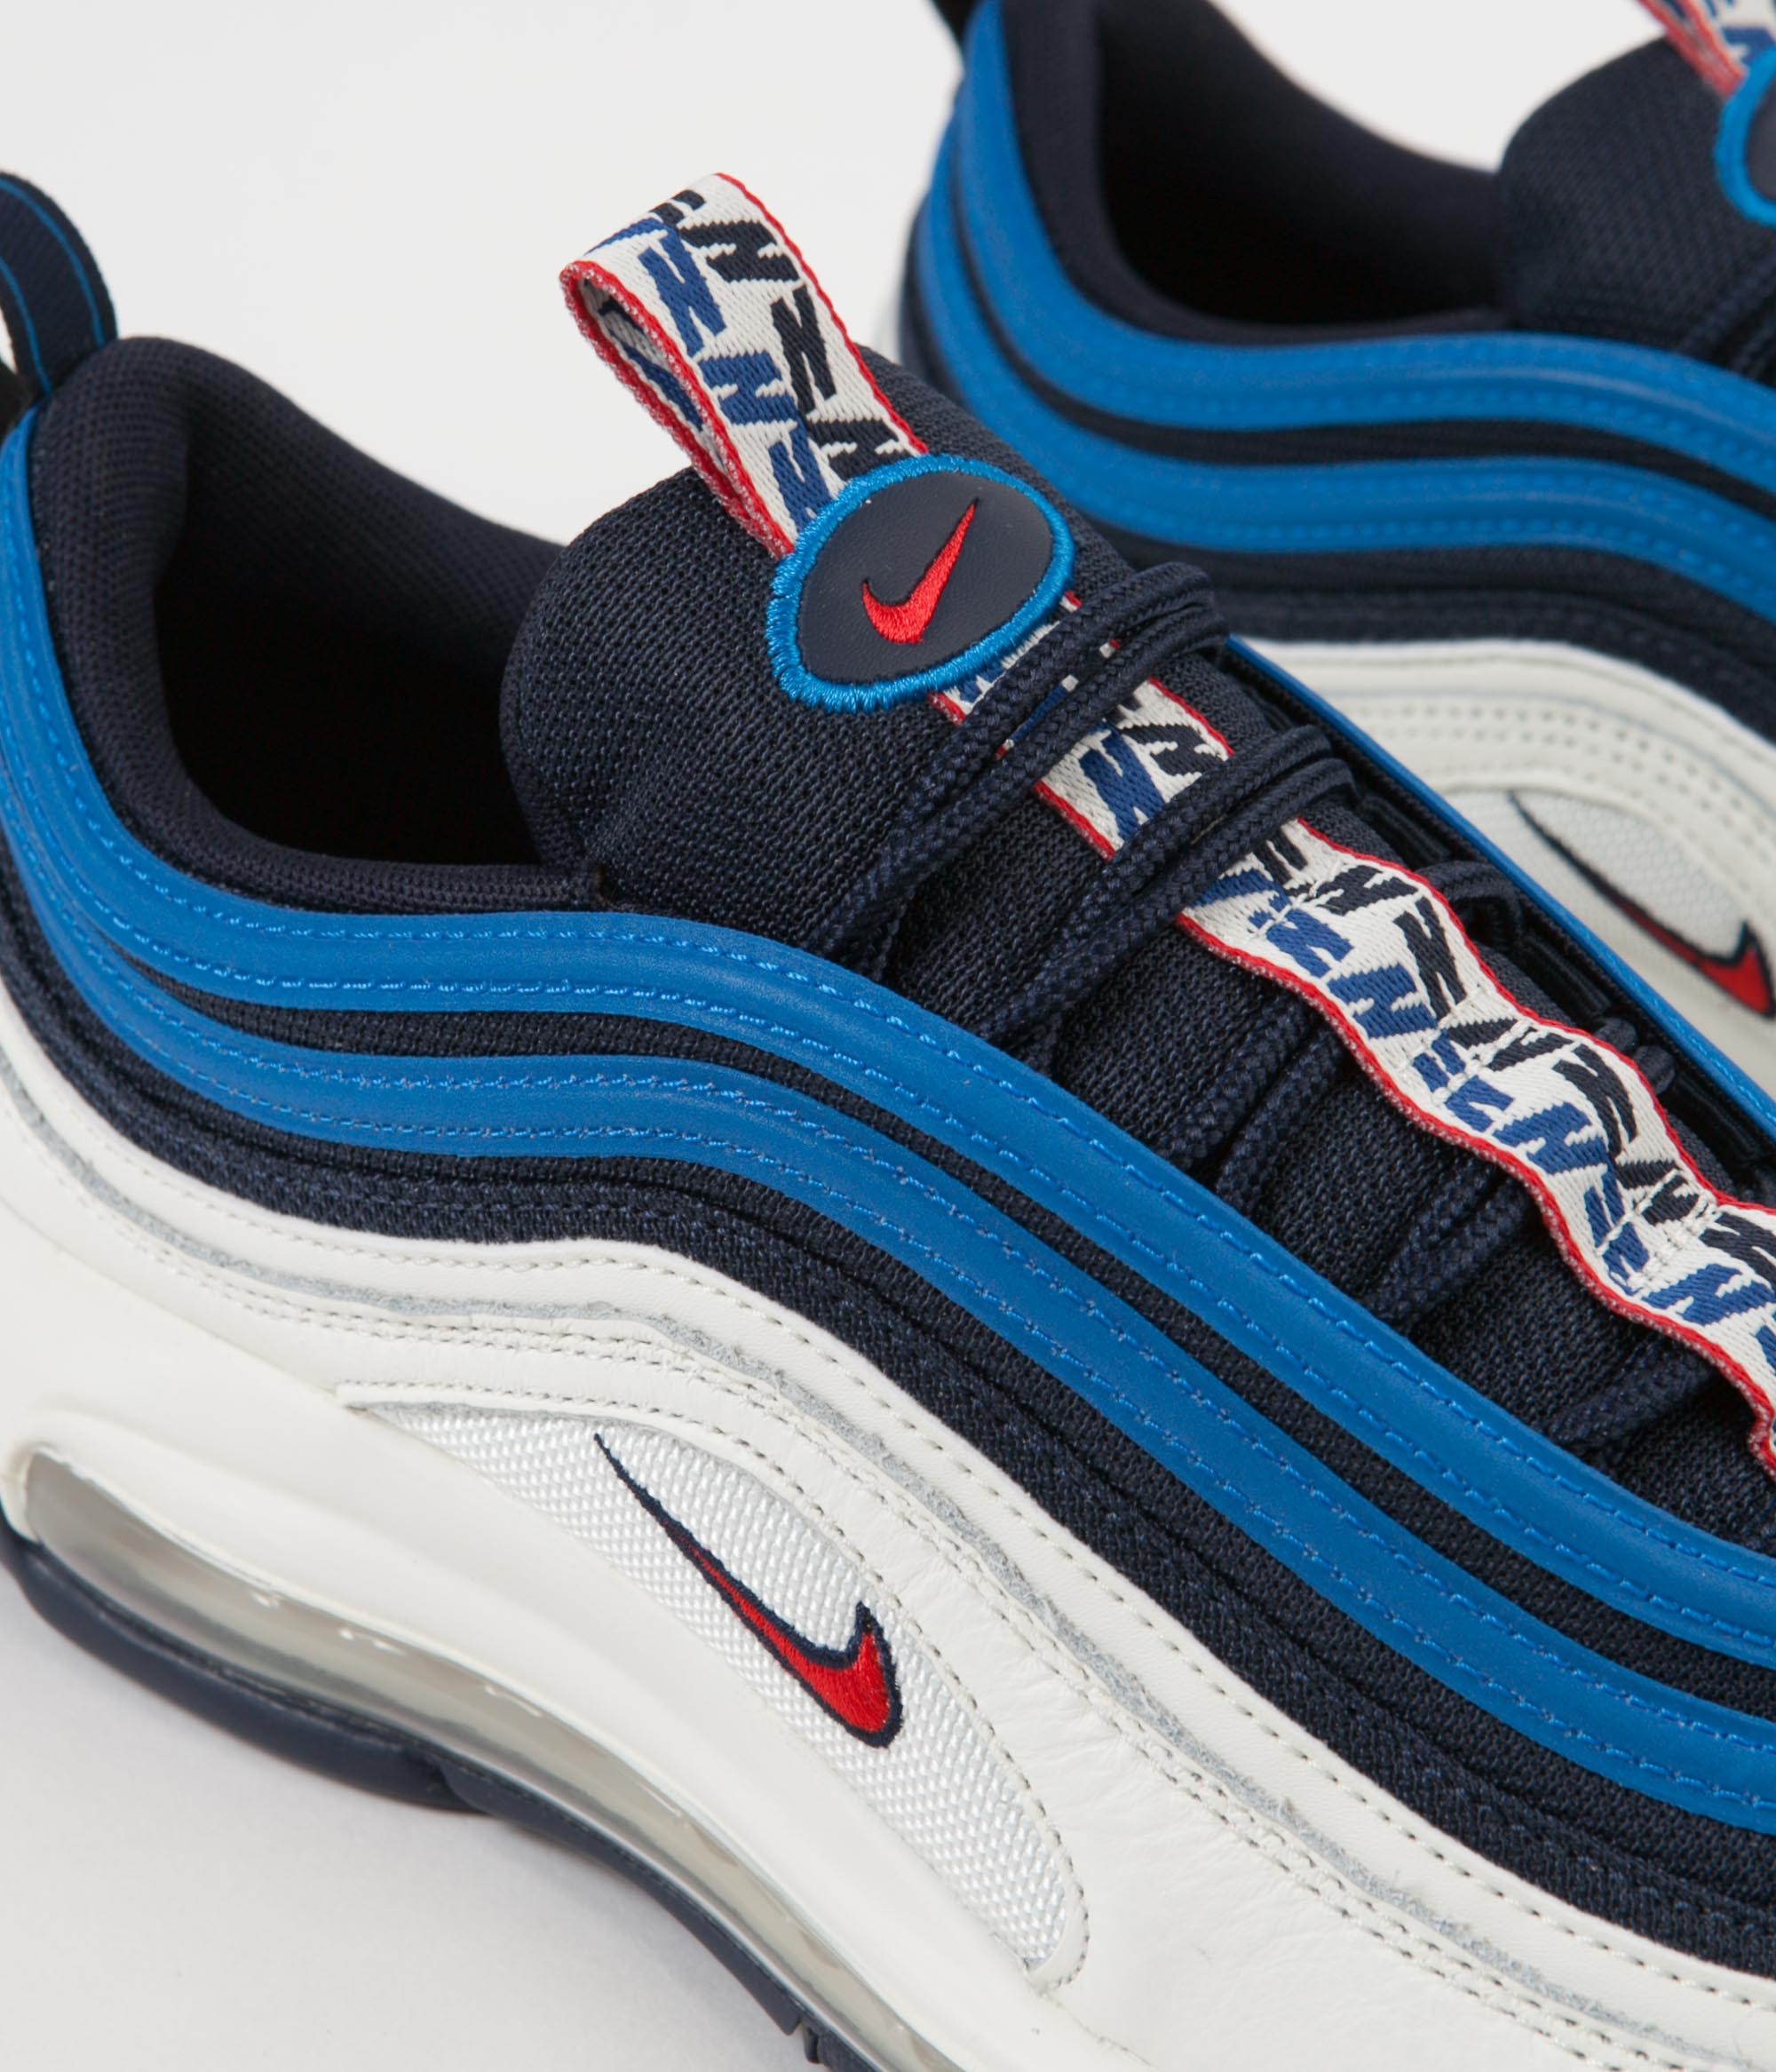 58e498c2e9 ... Nike Air Max 97 SE Shoes - Obsidian / University Red - Sail - Blue  Nebula ...